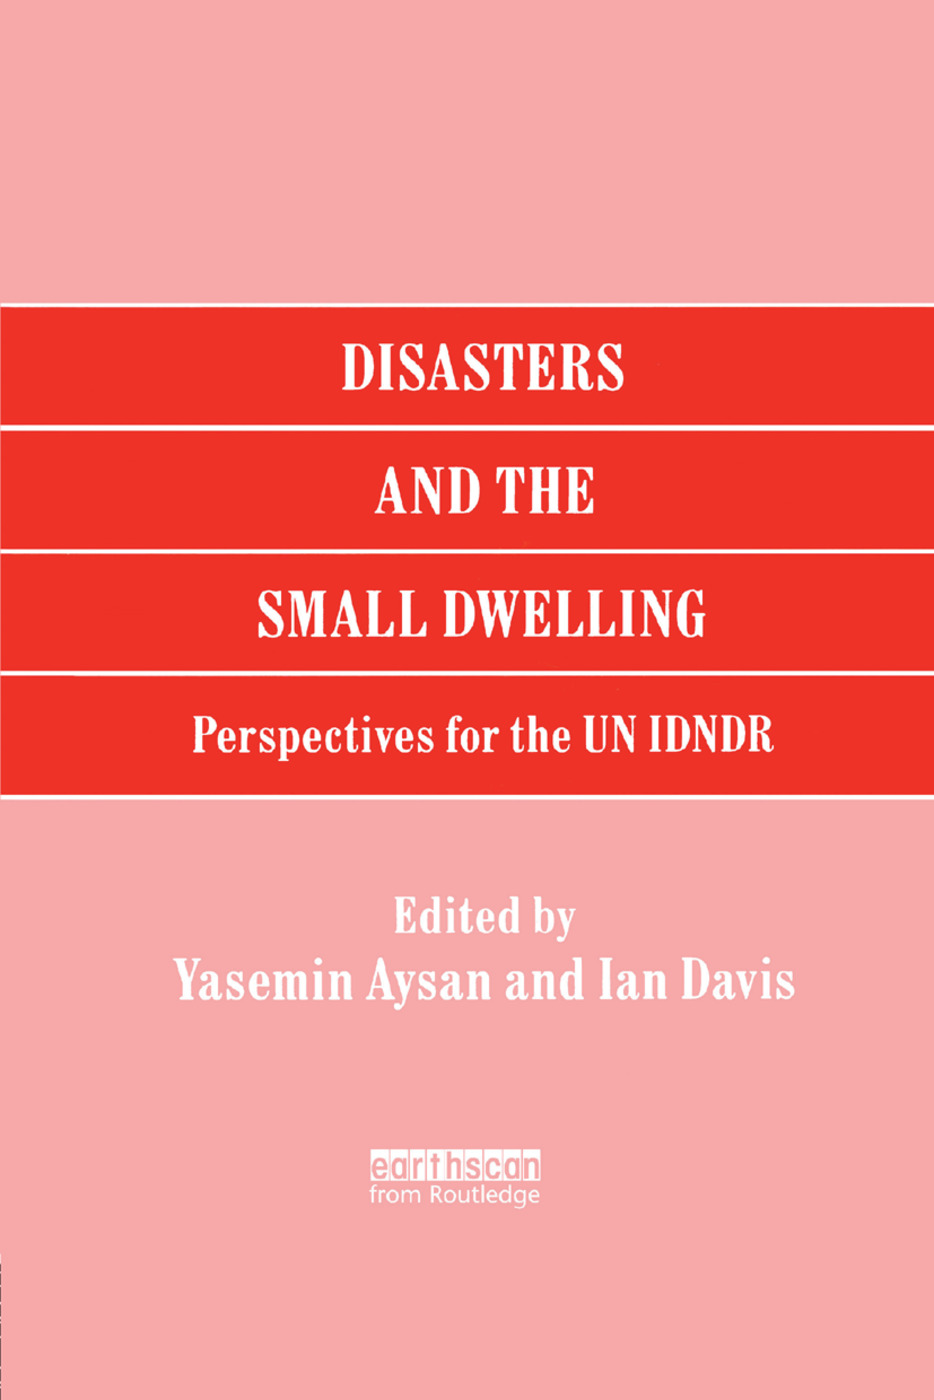 Disasters and the Small Dwelling: Perspectives for the UN IDNDR book cover